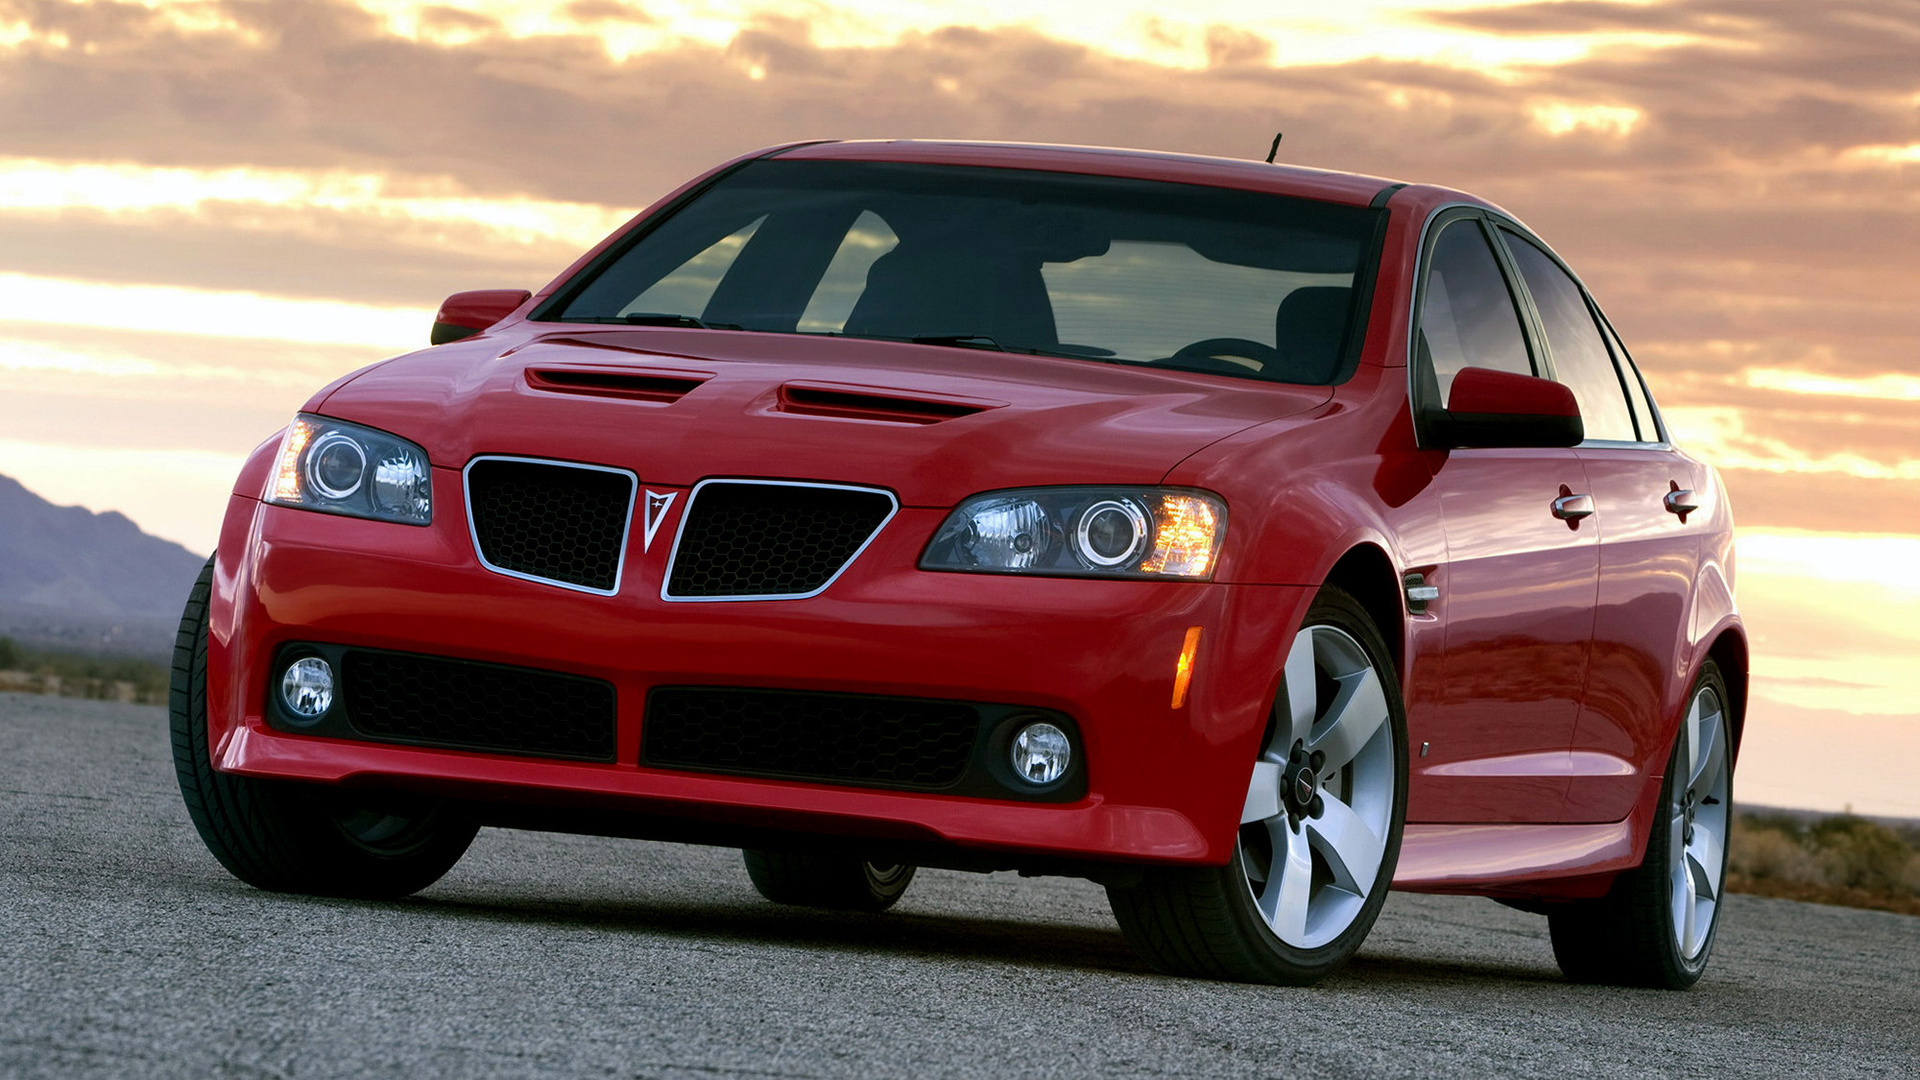 Pontiac G8 Gt 2007 Wallpapers And Hd Images Car Pixel